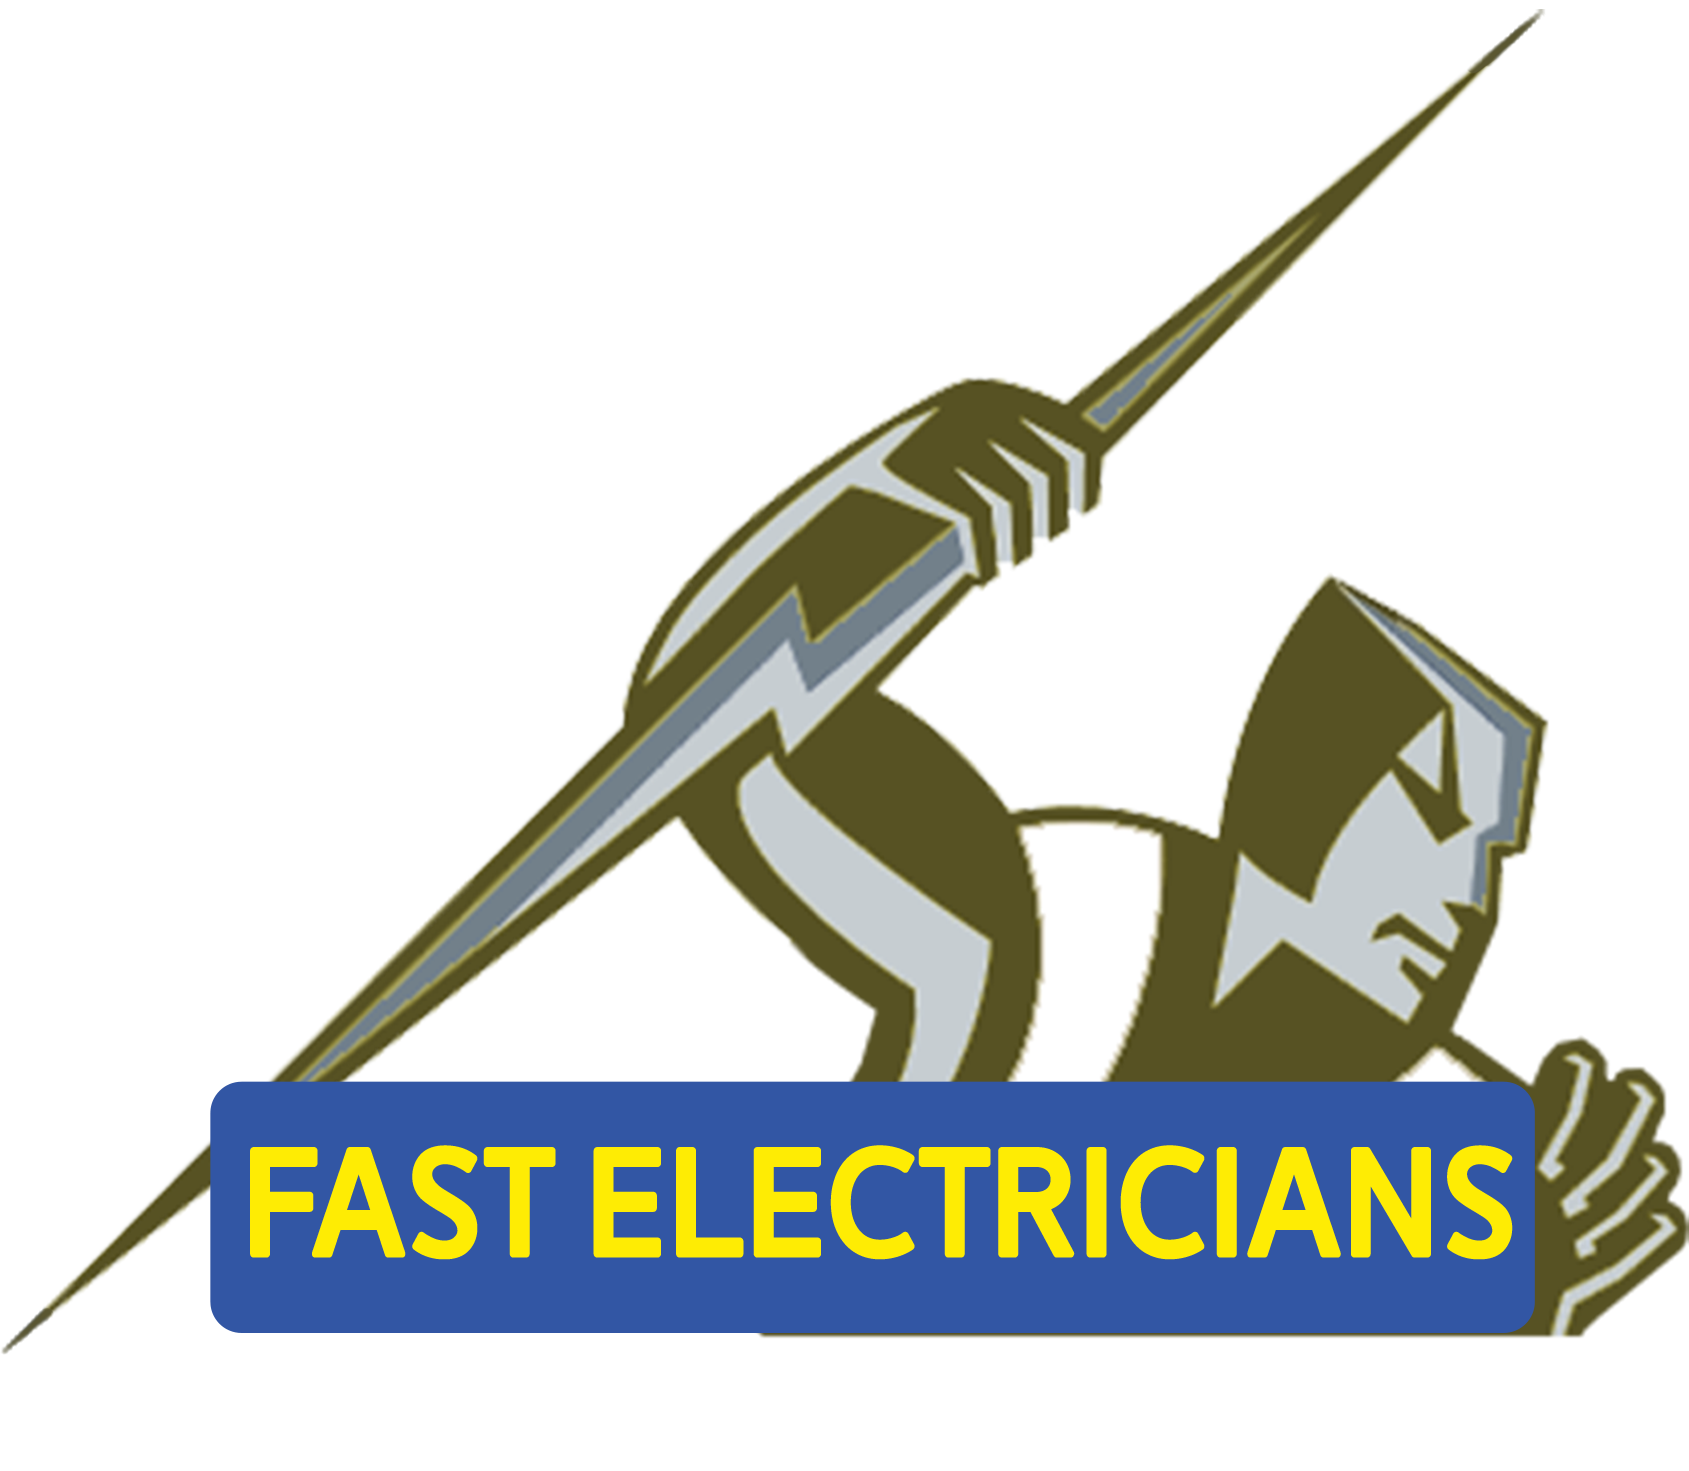 Tukwila Electrician Specializes In Providing Electrical Services For A Range Of Corporate Store Retai Electrician Services Electrician Electrical Installation